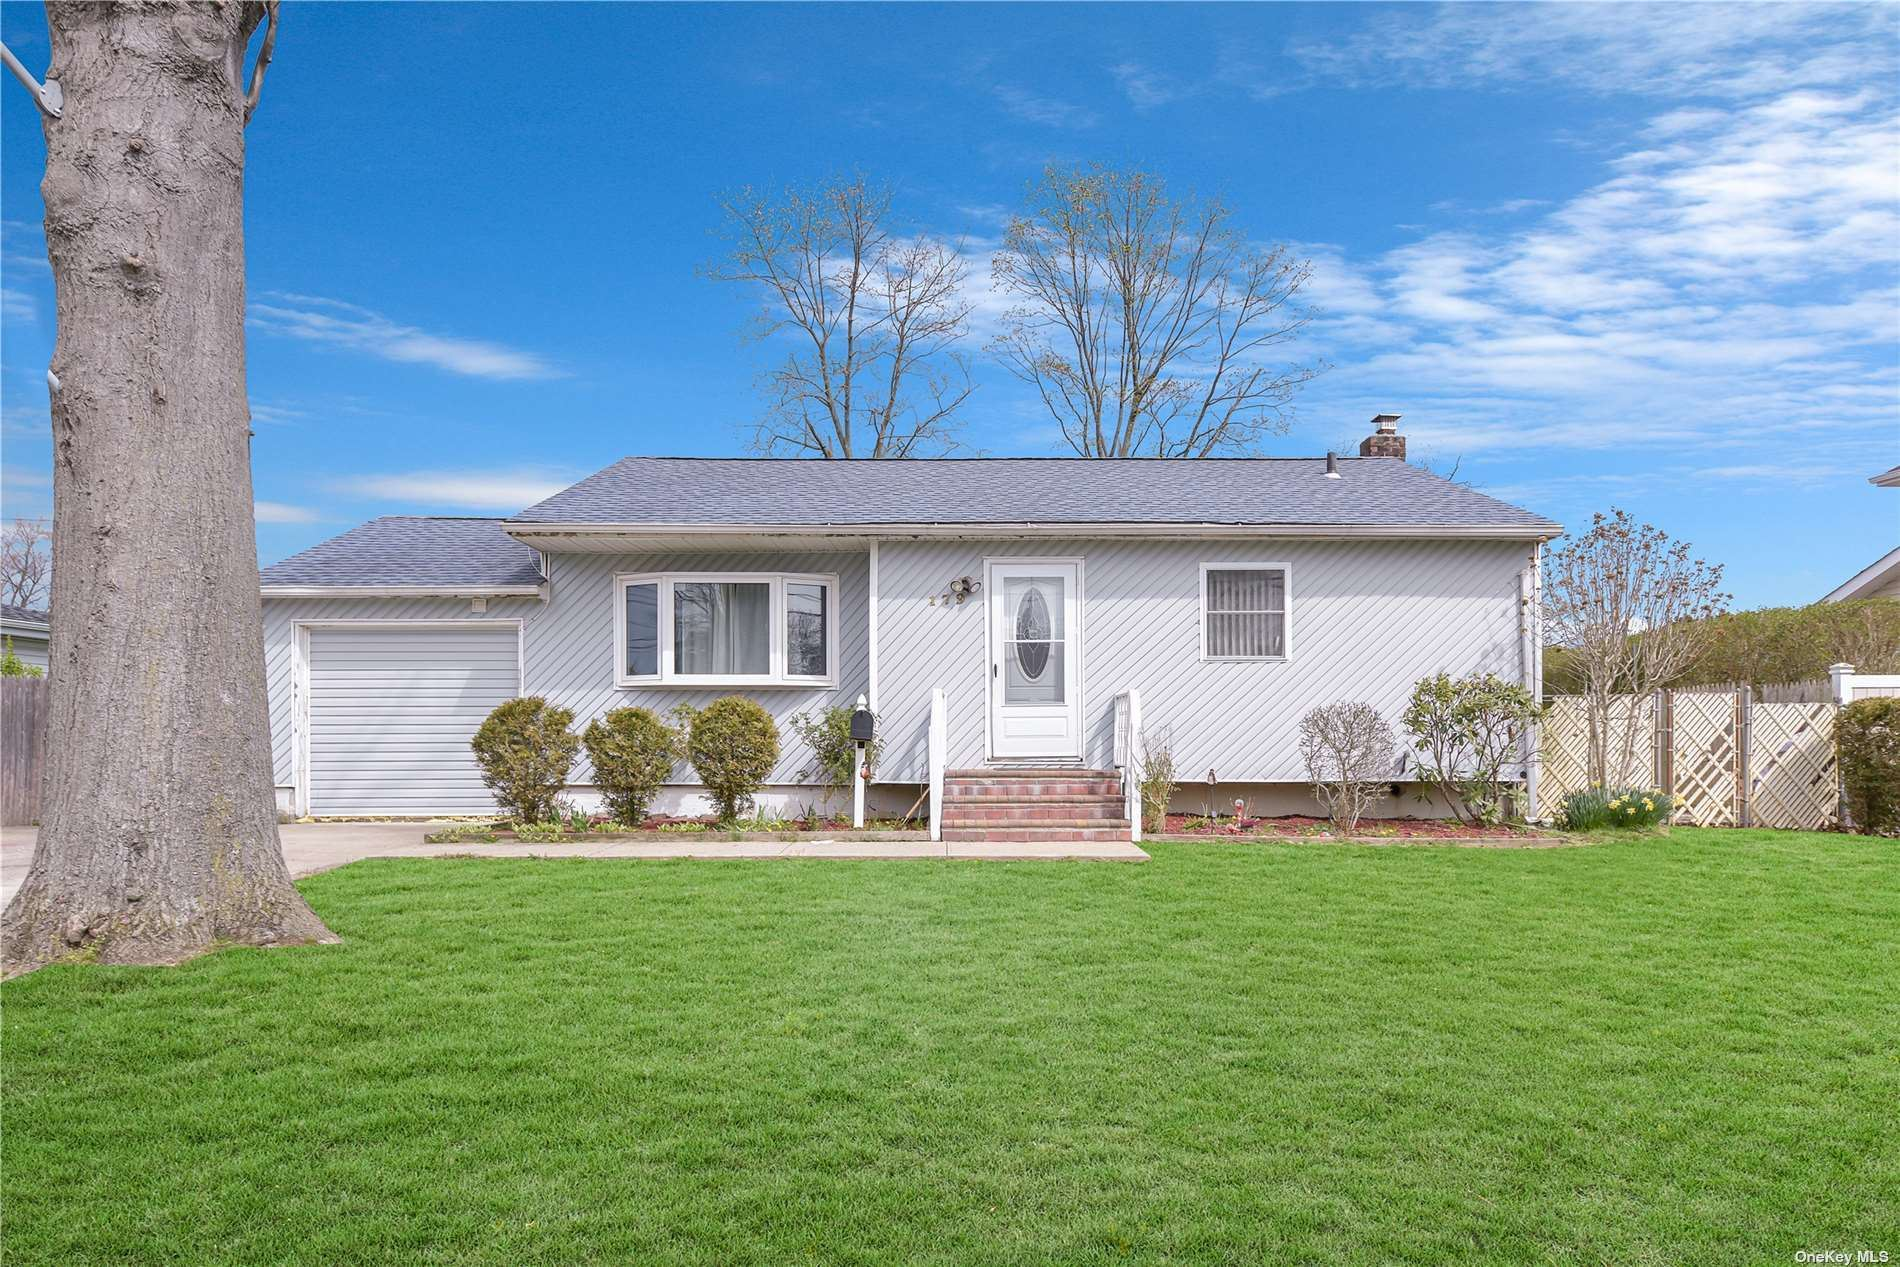 179 Front Avenue, Brentwood, NY 11717 - MLS#: 3302774